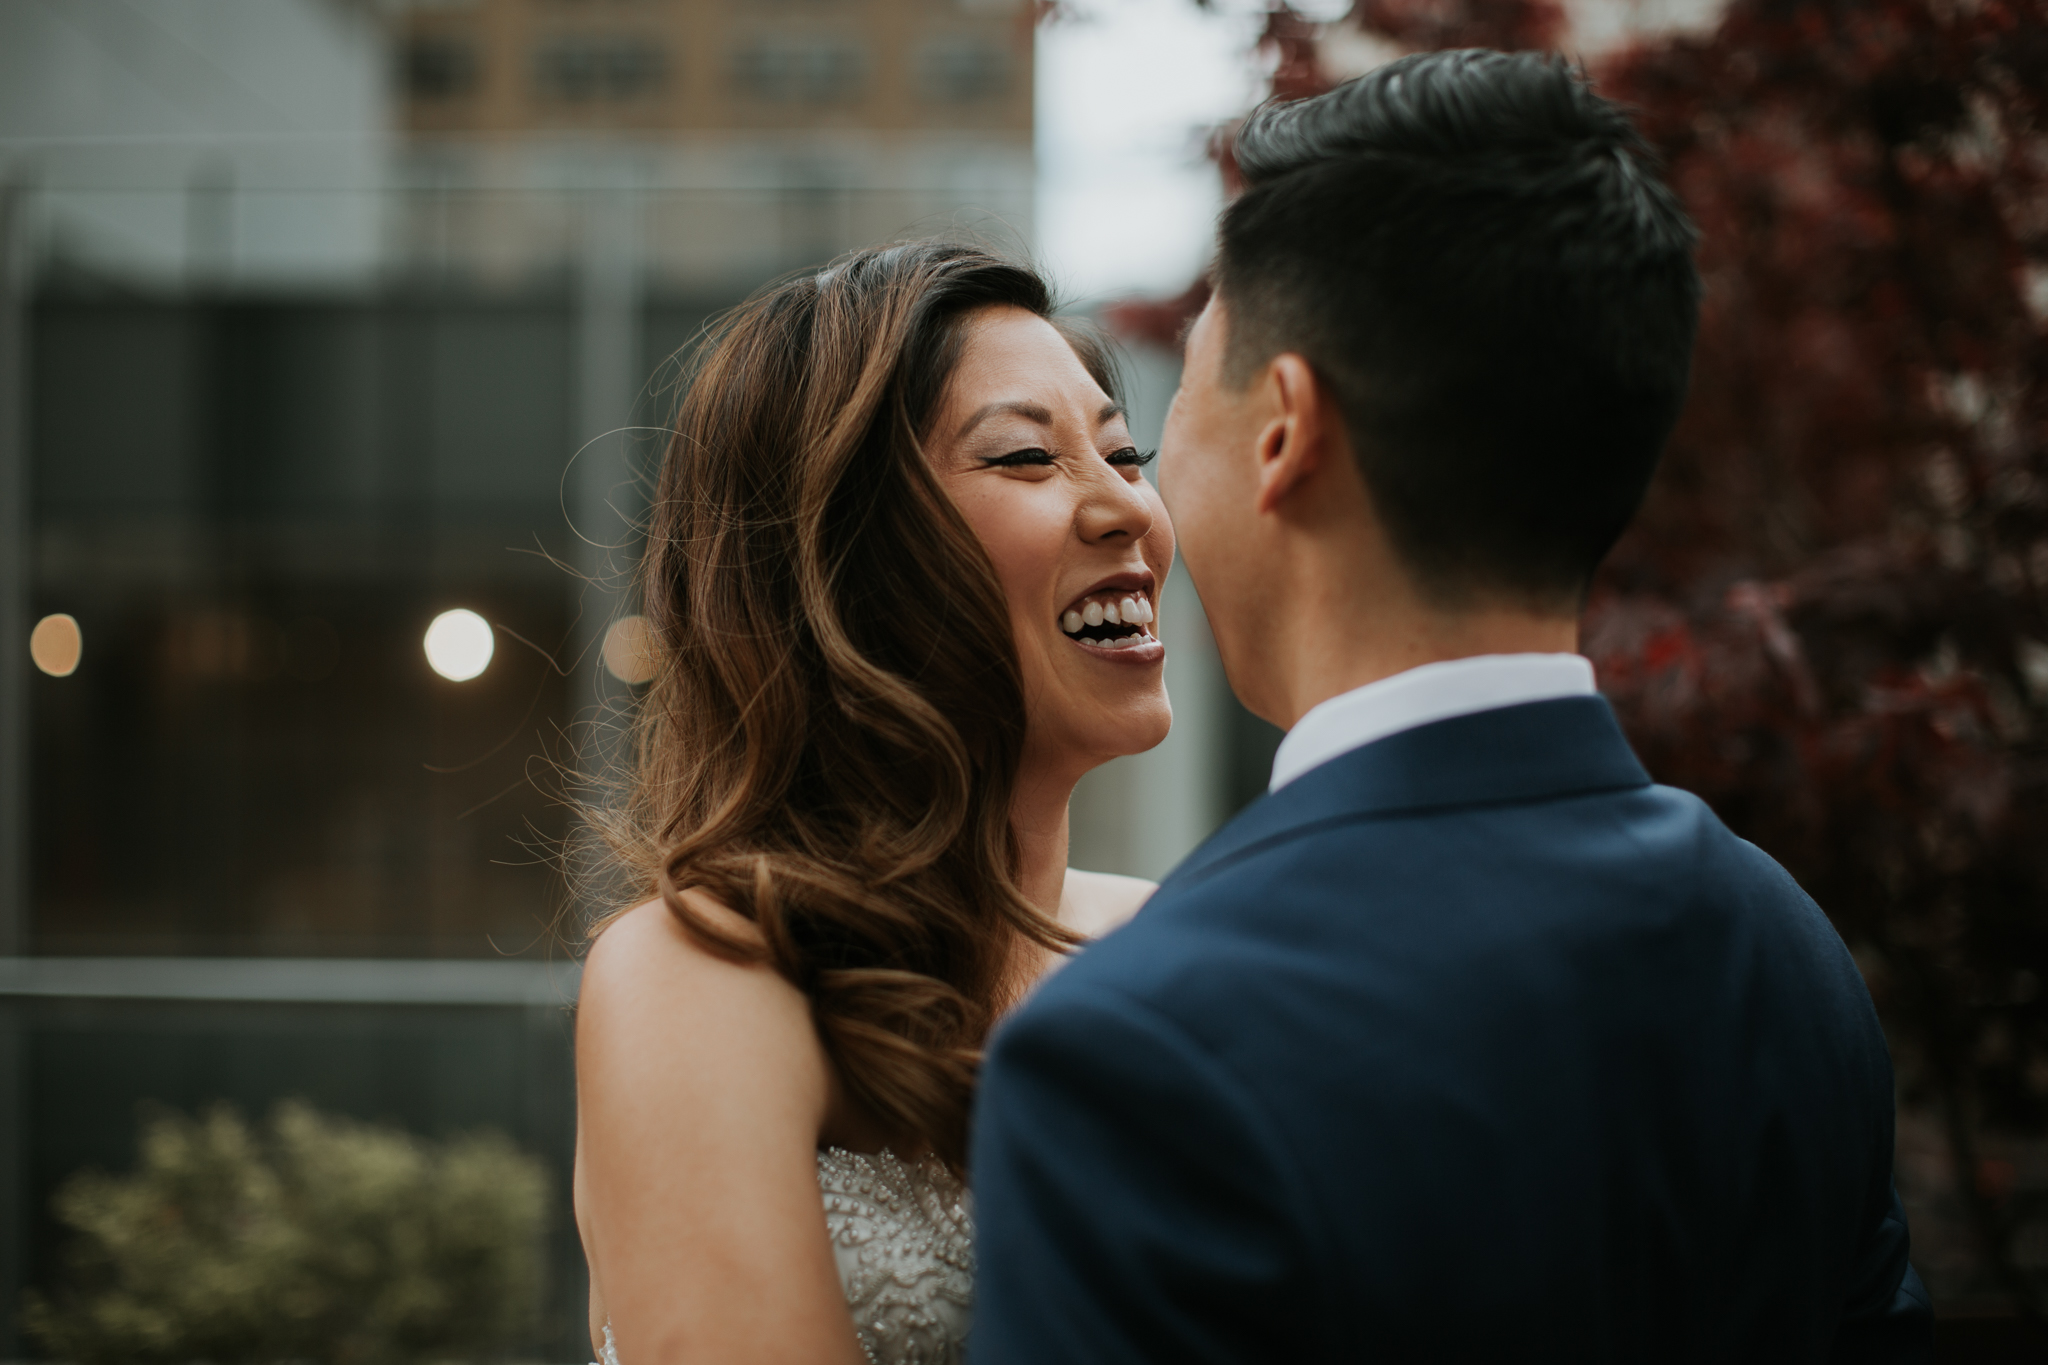 bride and groom nyc intimate moment